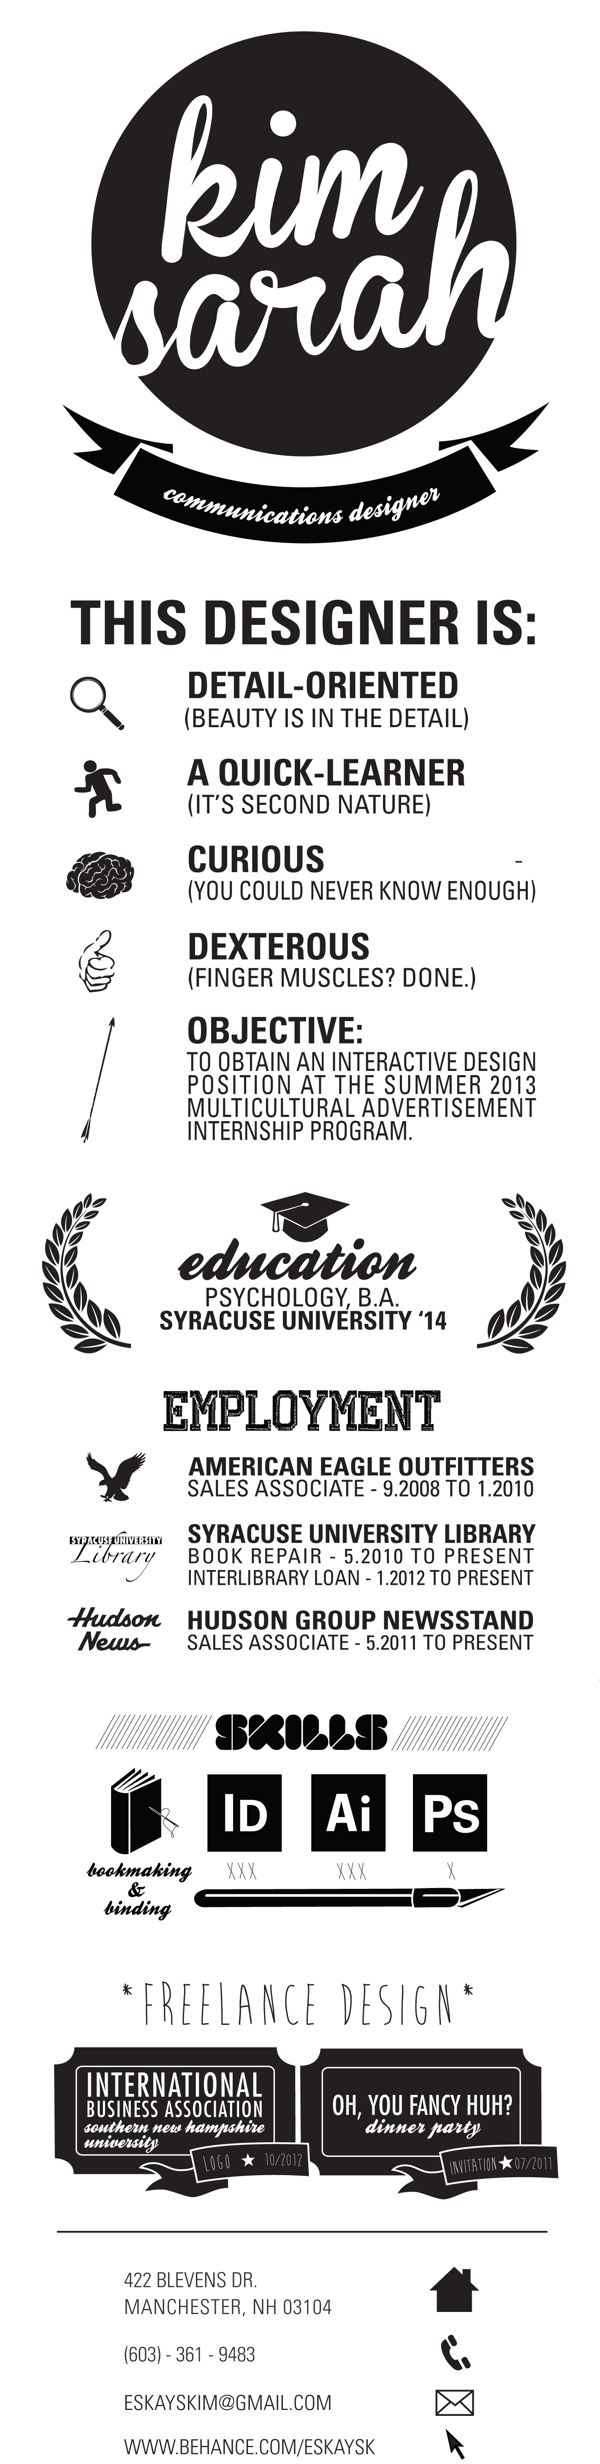 Picnictoimpeachus  Wonderful  Ideas About Infographic Resume On Pinterest  My Portfolio  With Goodlooking  Ideas About Infographic Resume On Pinterest  My Portfolio Resume And Resume Design With Attractive Proper Resume Also Education Resume Template In Addition Communications Resume And Customer Service Rep Resume As Well As How To Make A Free Resume Additionally Resume For Cna From Pinterestcom With Picnictoimpeachus  Goodlooking  Ideas About Infographic Resume On Pinterest  My Portfolio  With Attractive  Ideas About Infographic Resume On Pinterest  My Portfolio Resume And Resume Design And Wonderful Proper Resume Also Education Resume Template In Addition Communications Resume From Pinterestcom